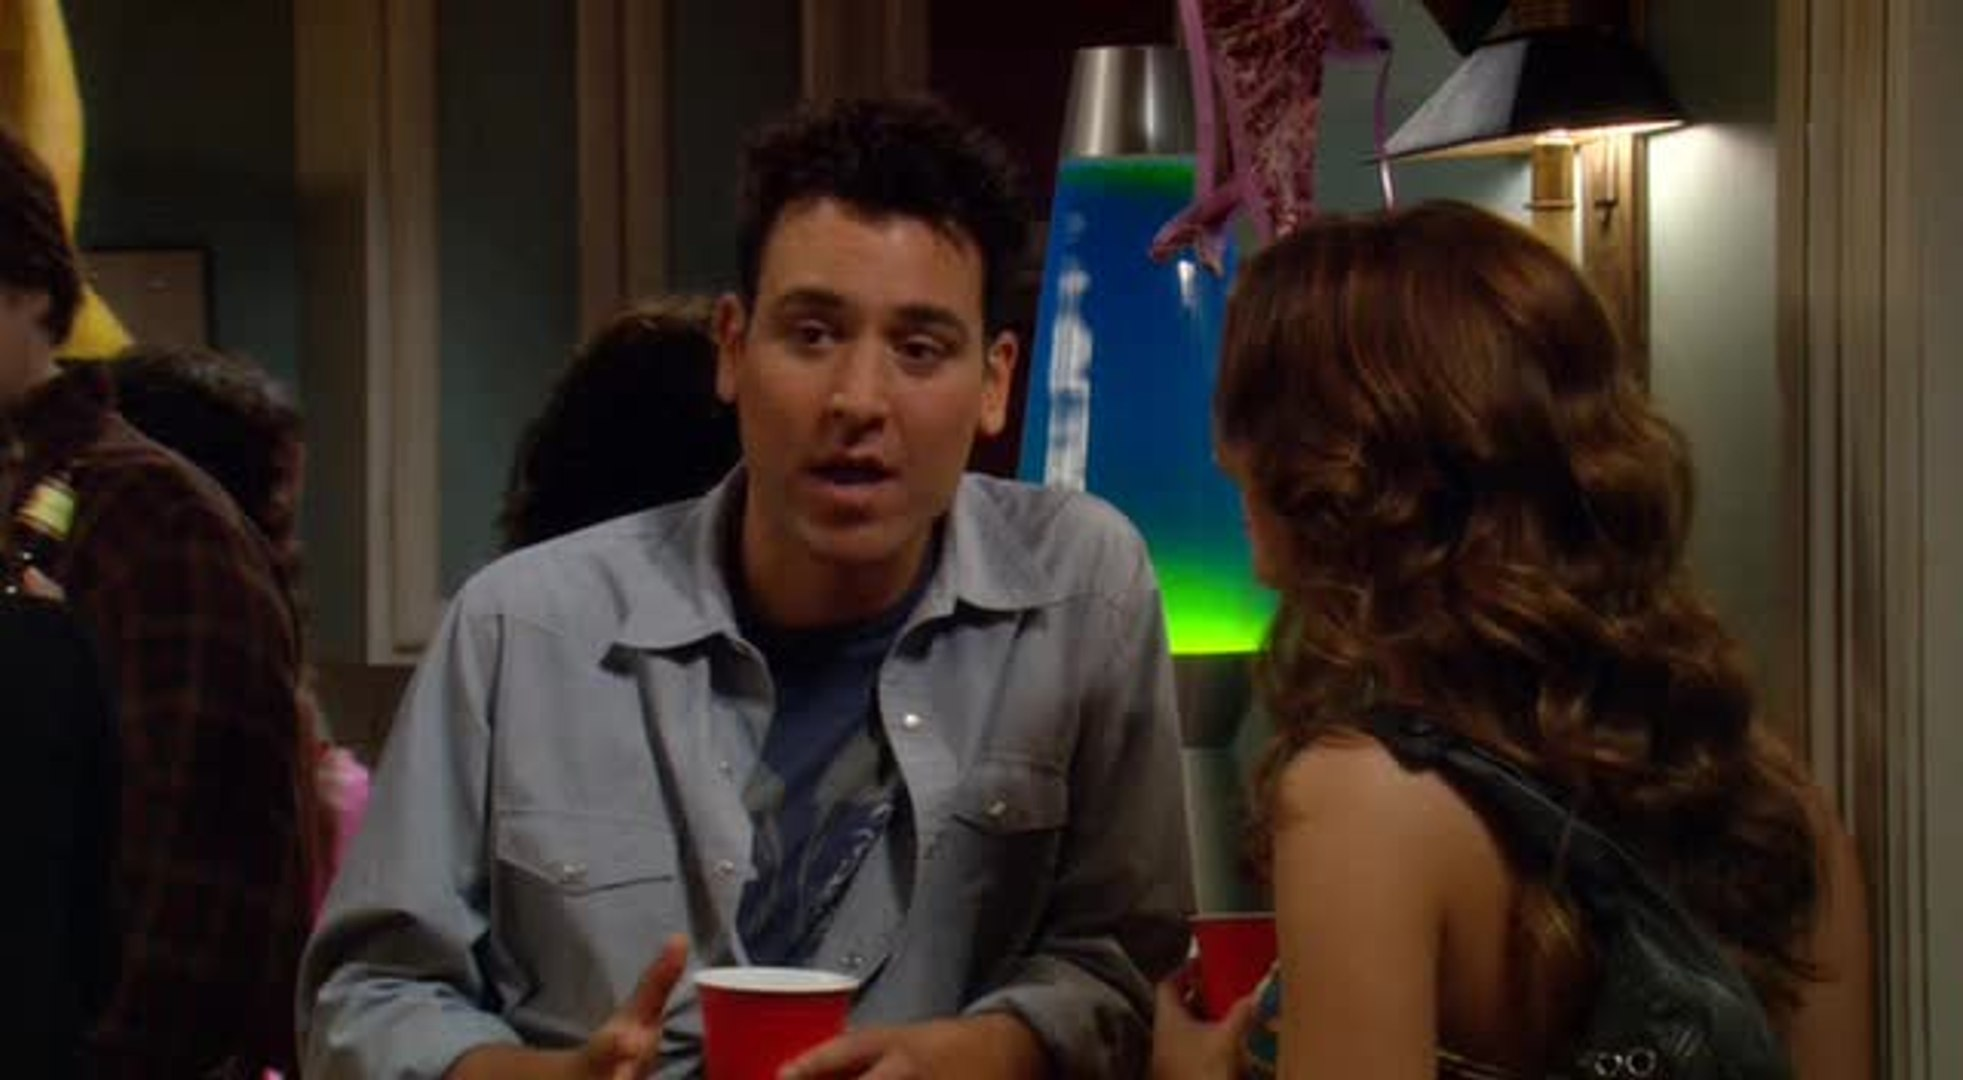 How I Met Your Mother S 2 E 4 Ted Mosby Architect Video Dailymotion